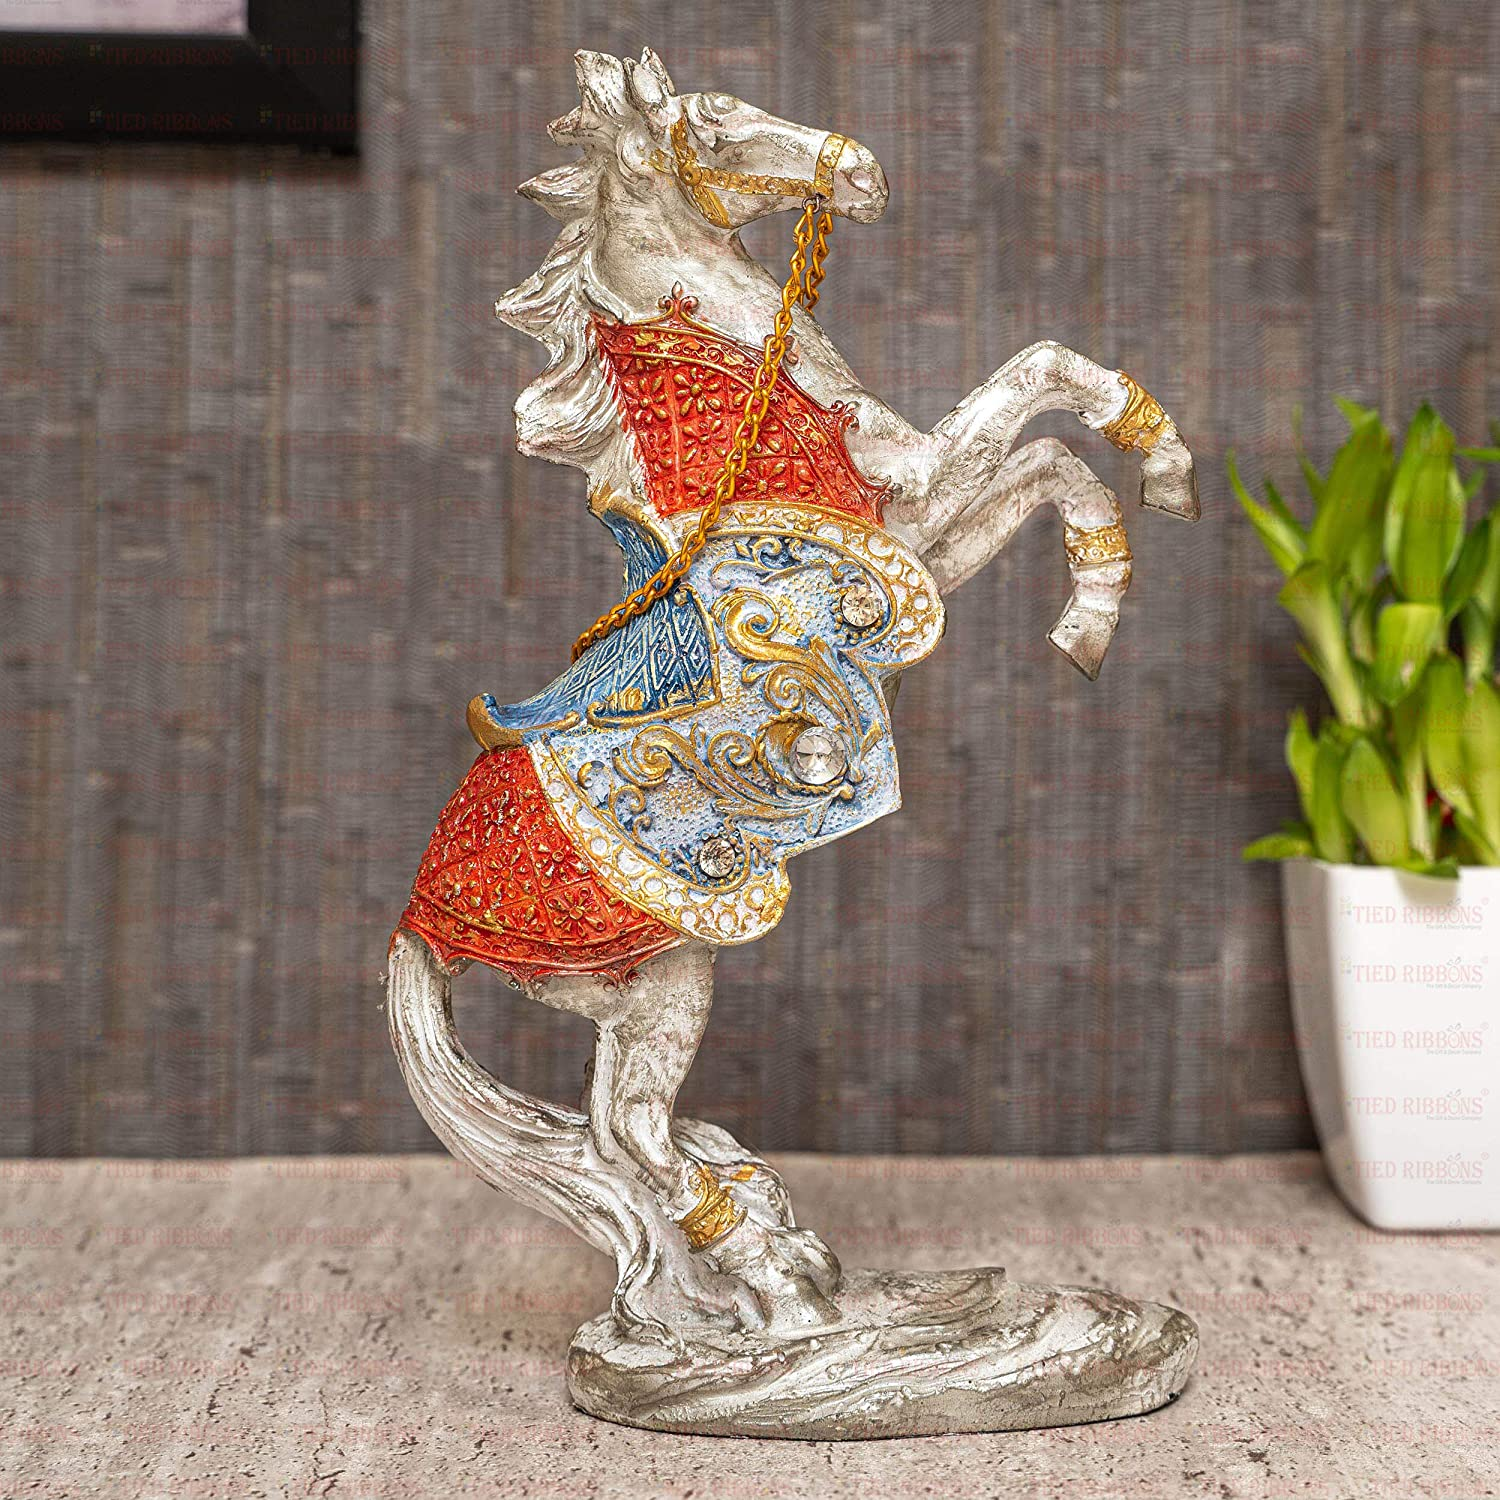 TIED RIBBONS Roaring Horse Statue Showpiece for Home Decor (Polyresin, 18 cm X 15cm) - Diwali Home Decoration Figurines